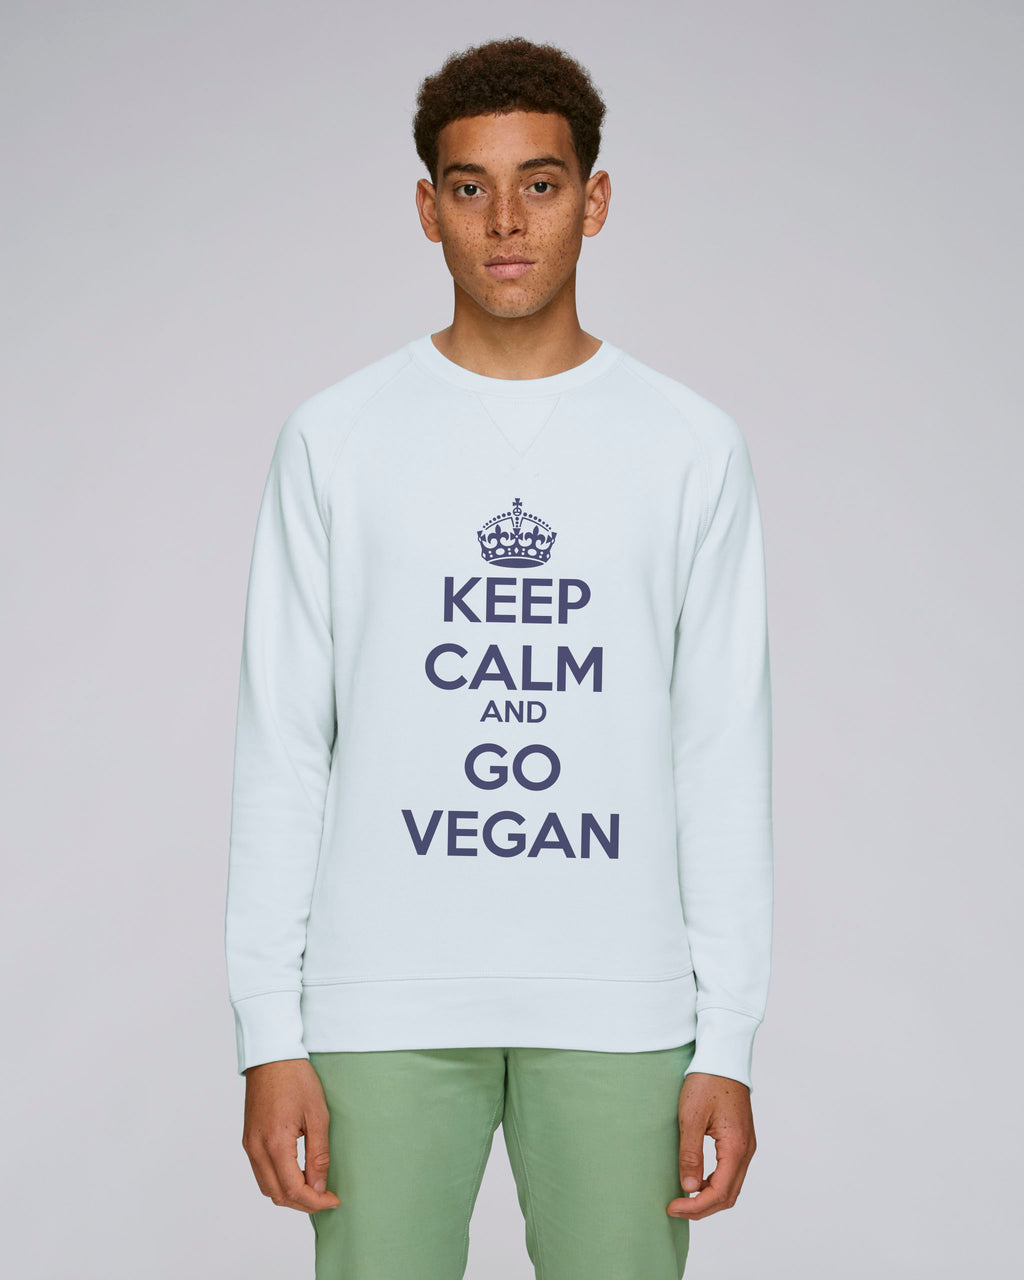 KEEP CALM AND GO VEGAN - Sweatshirt homme - Raglan